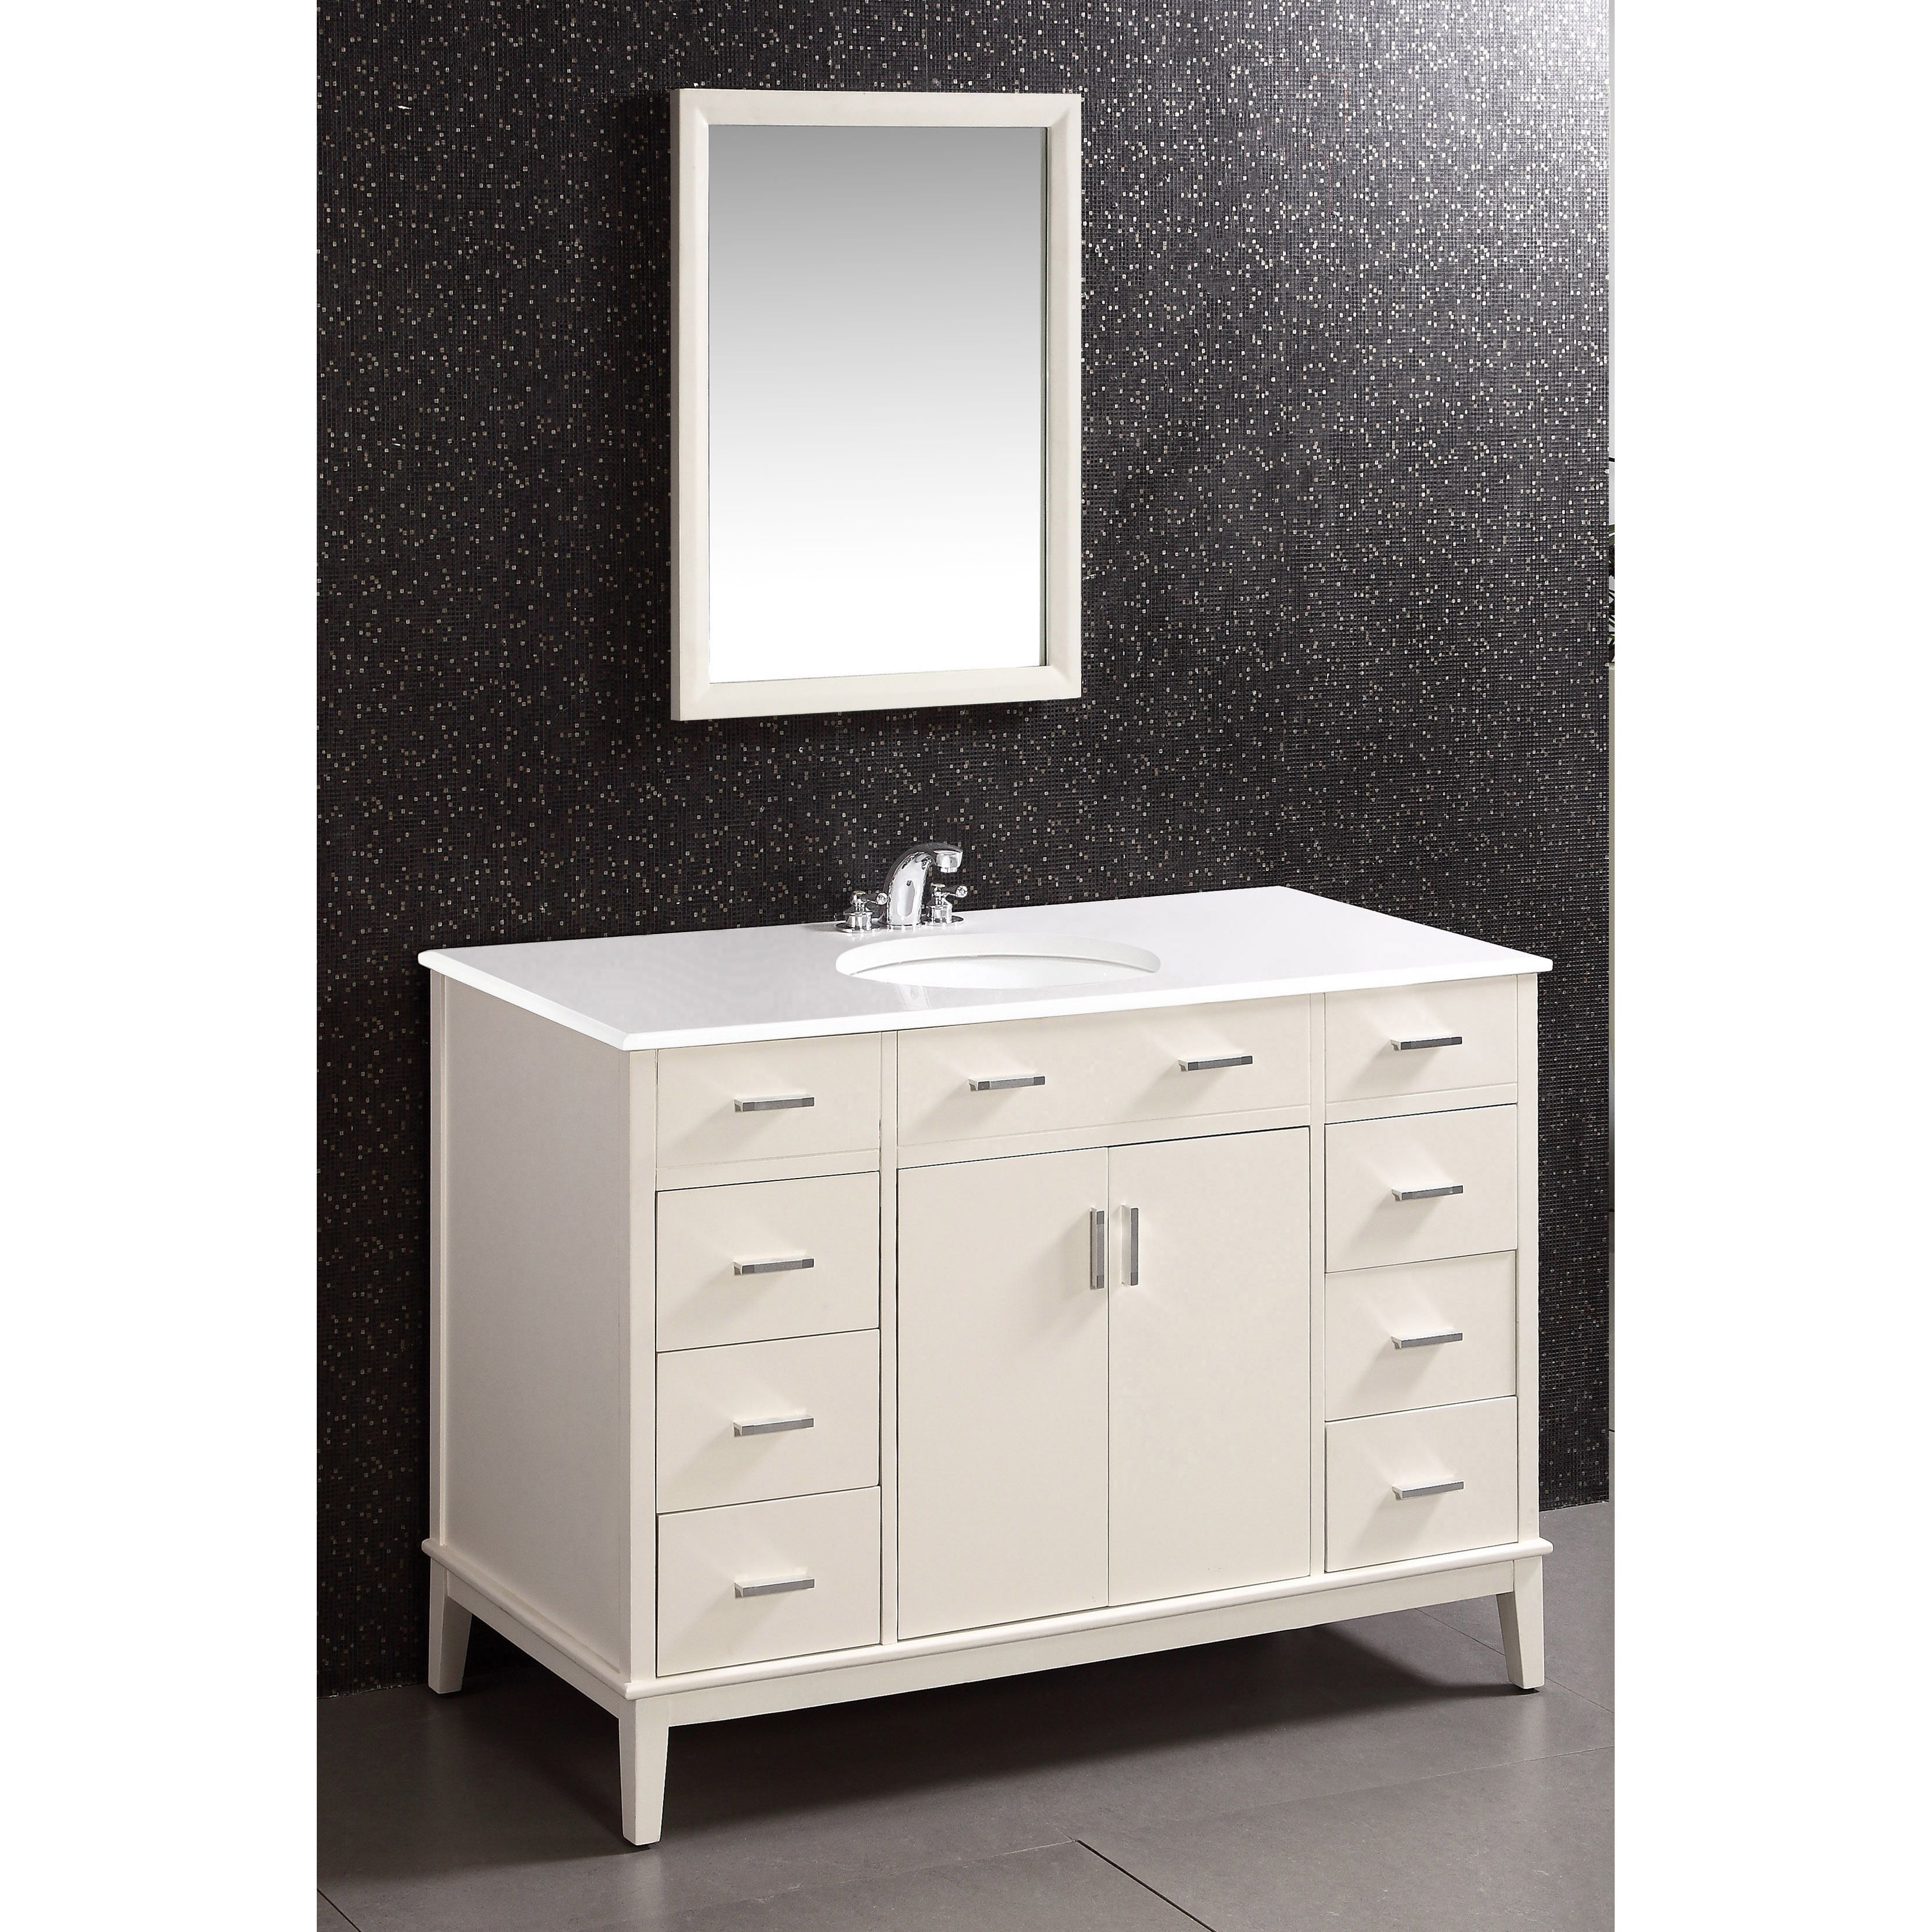 WYNDENHALL Oxford White 48 inch Bath Vanity with 2 Doors and White